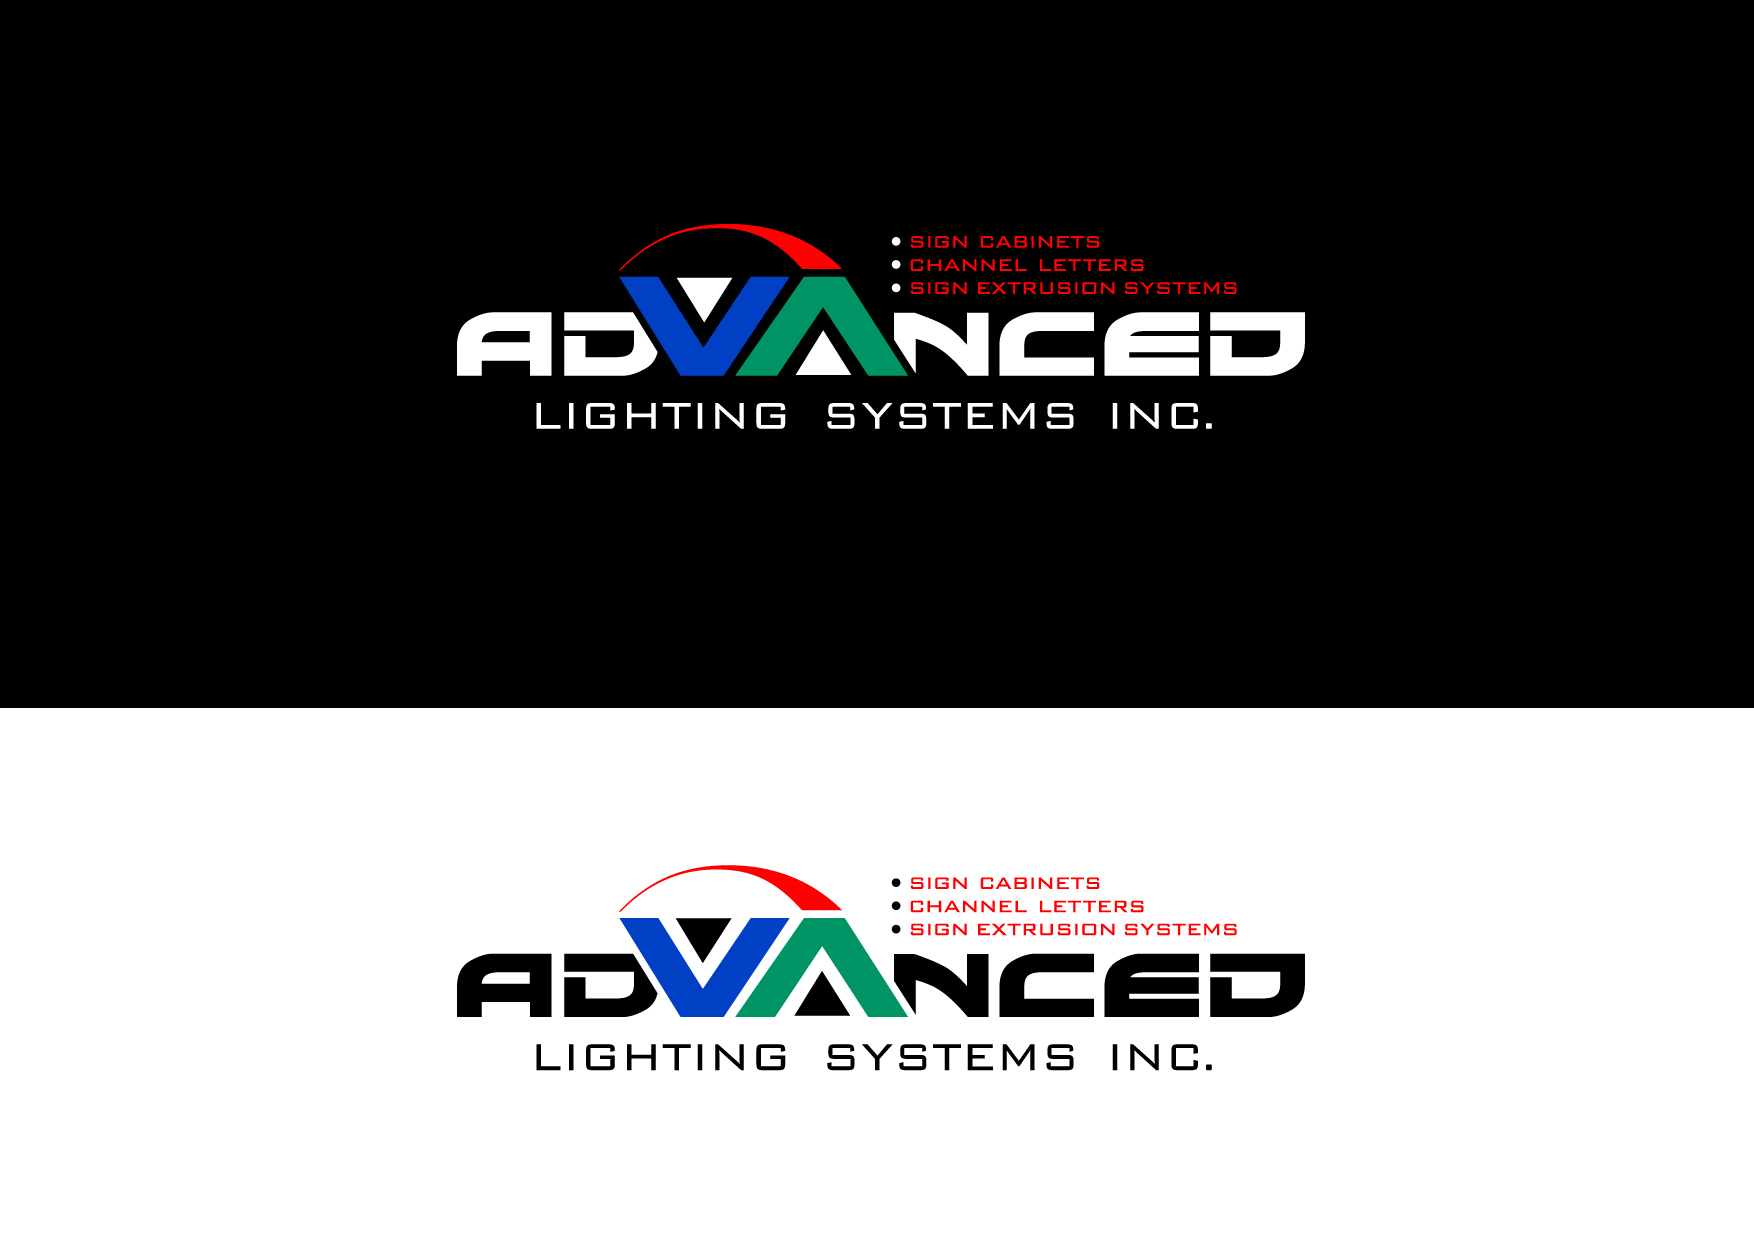 Logo Design by Wilfredo Mendoza - Entry No. 161 in the Logo Design Contest New Logo Design Needed for  Company Advanced Lighting Systems Inc..